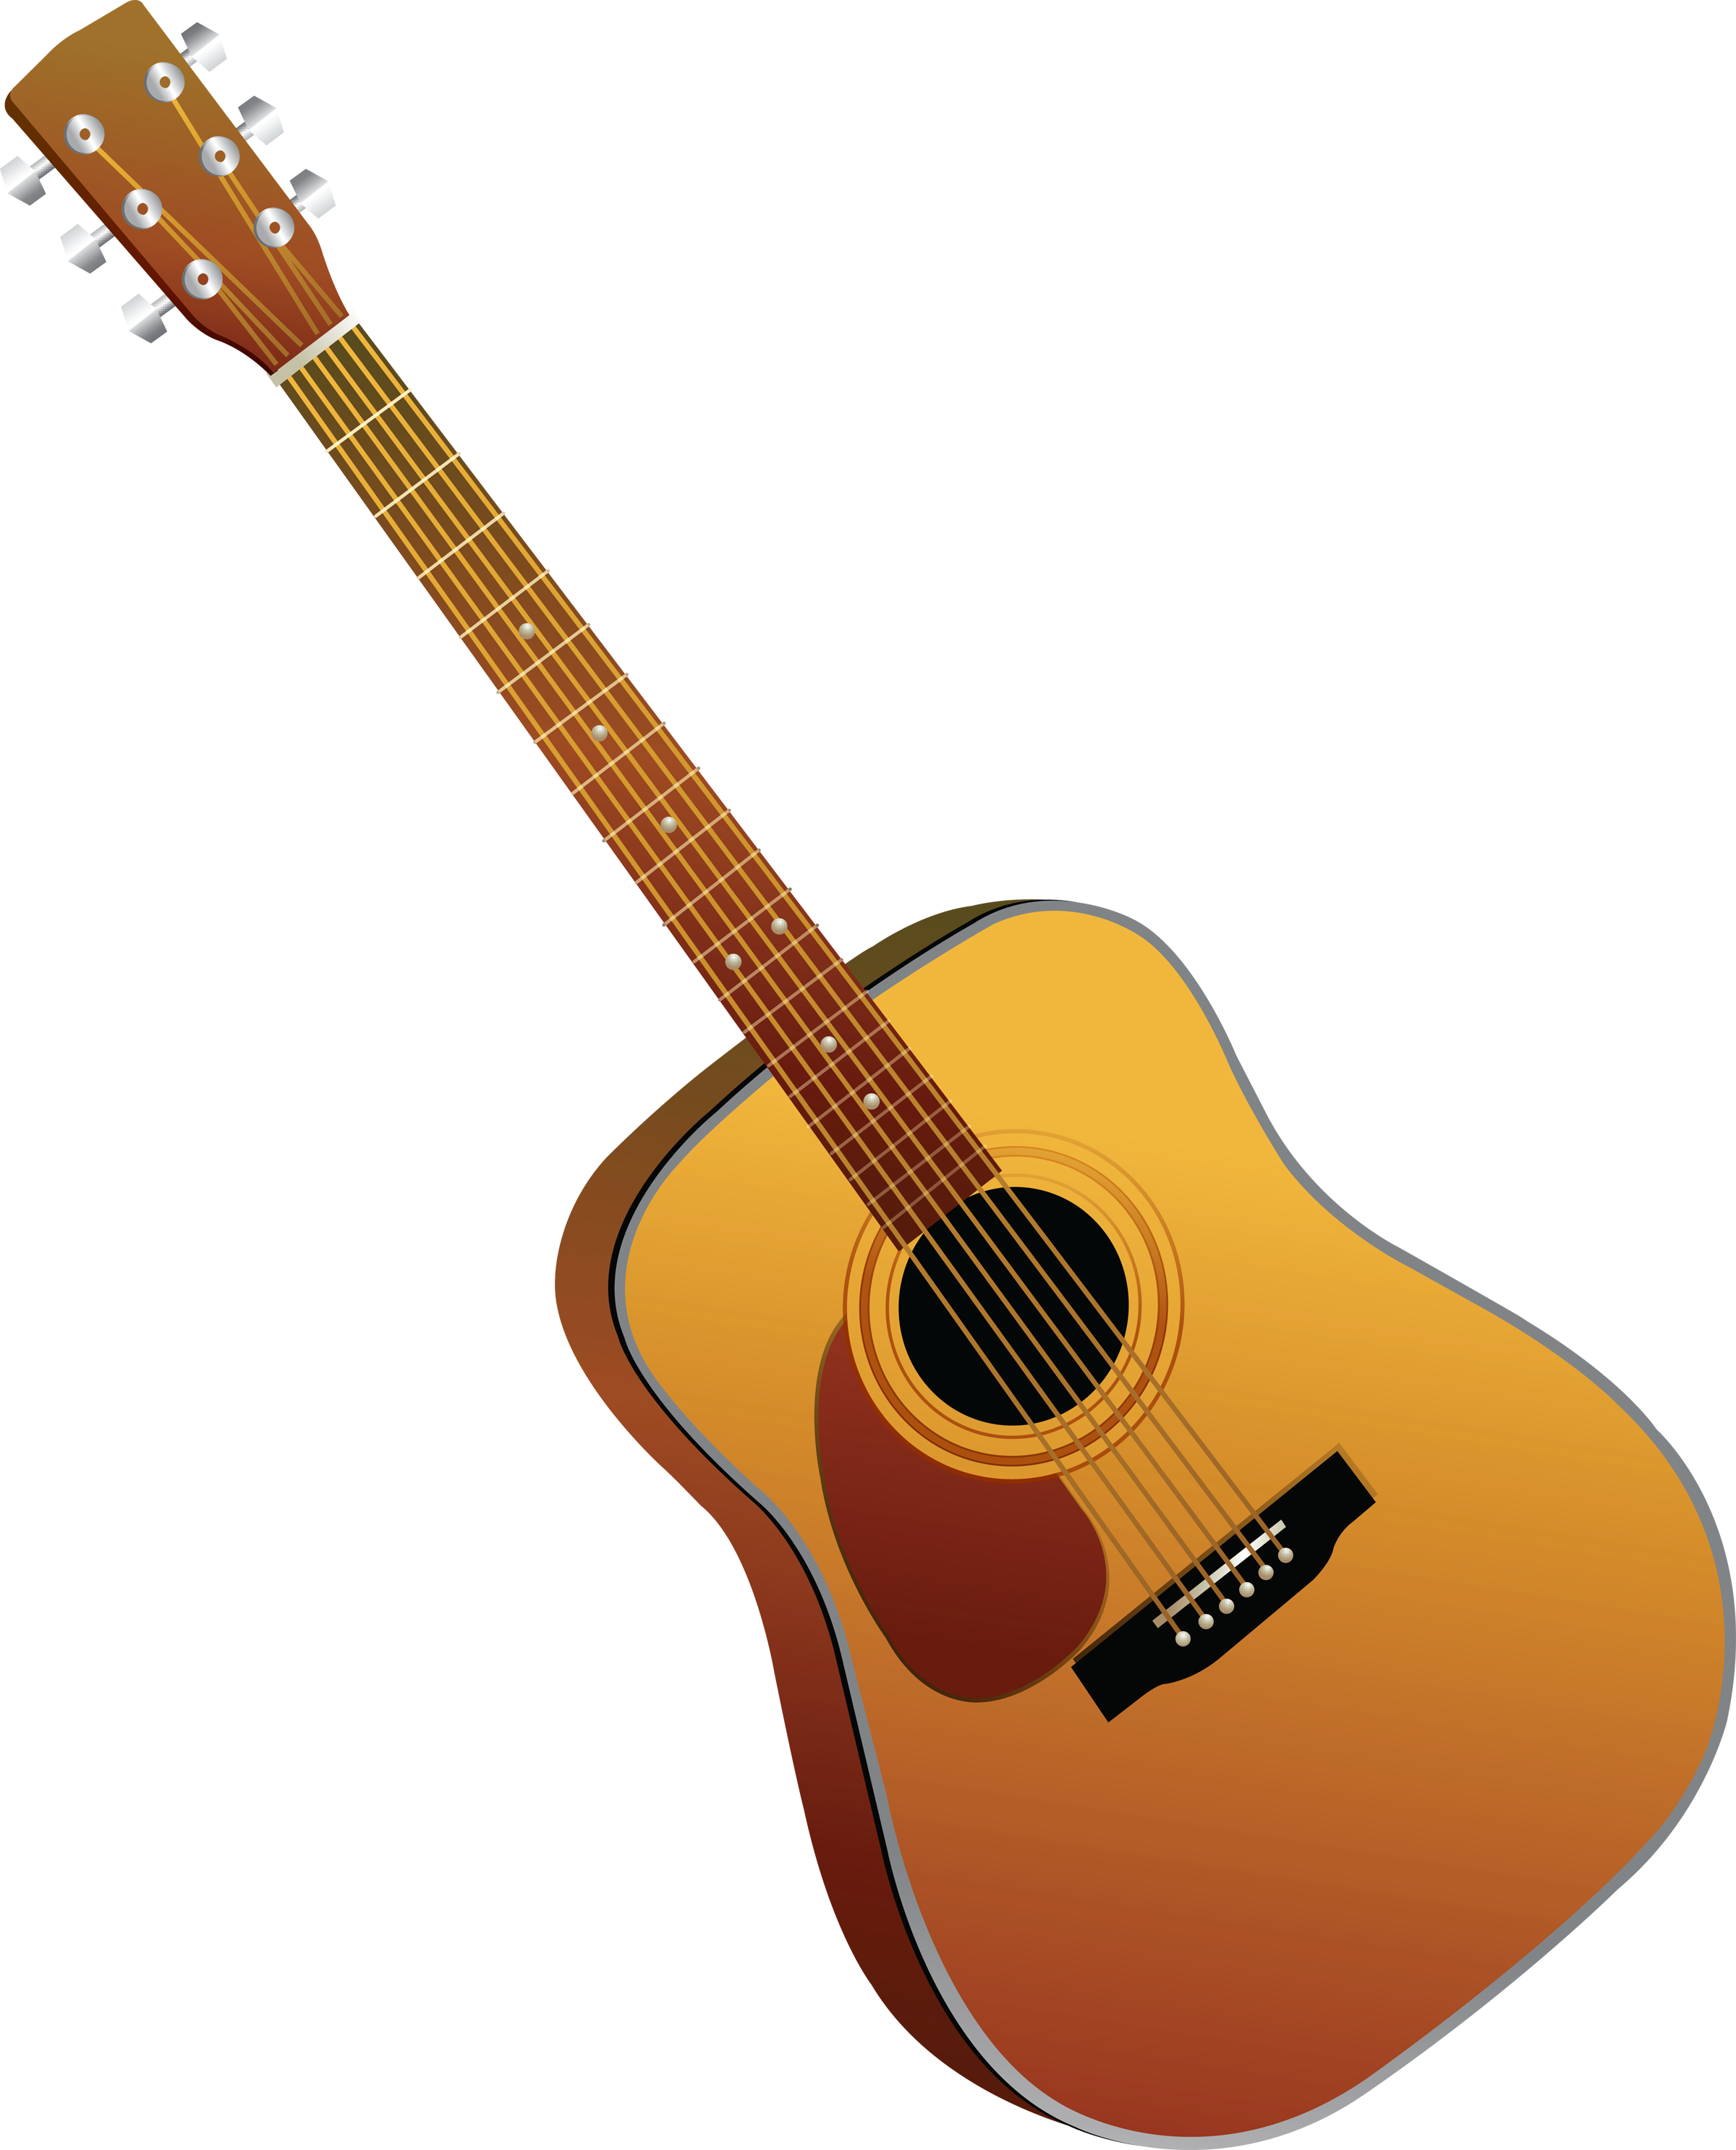 Guitar Classic PNG Image image #46320